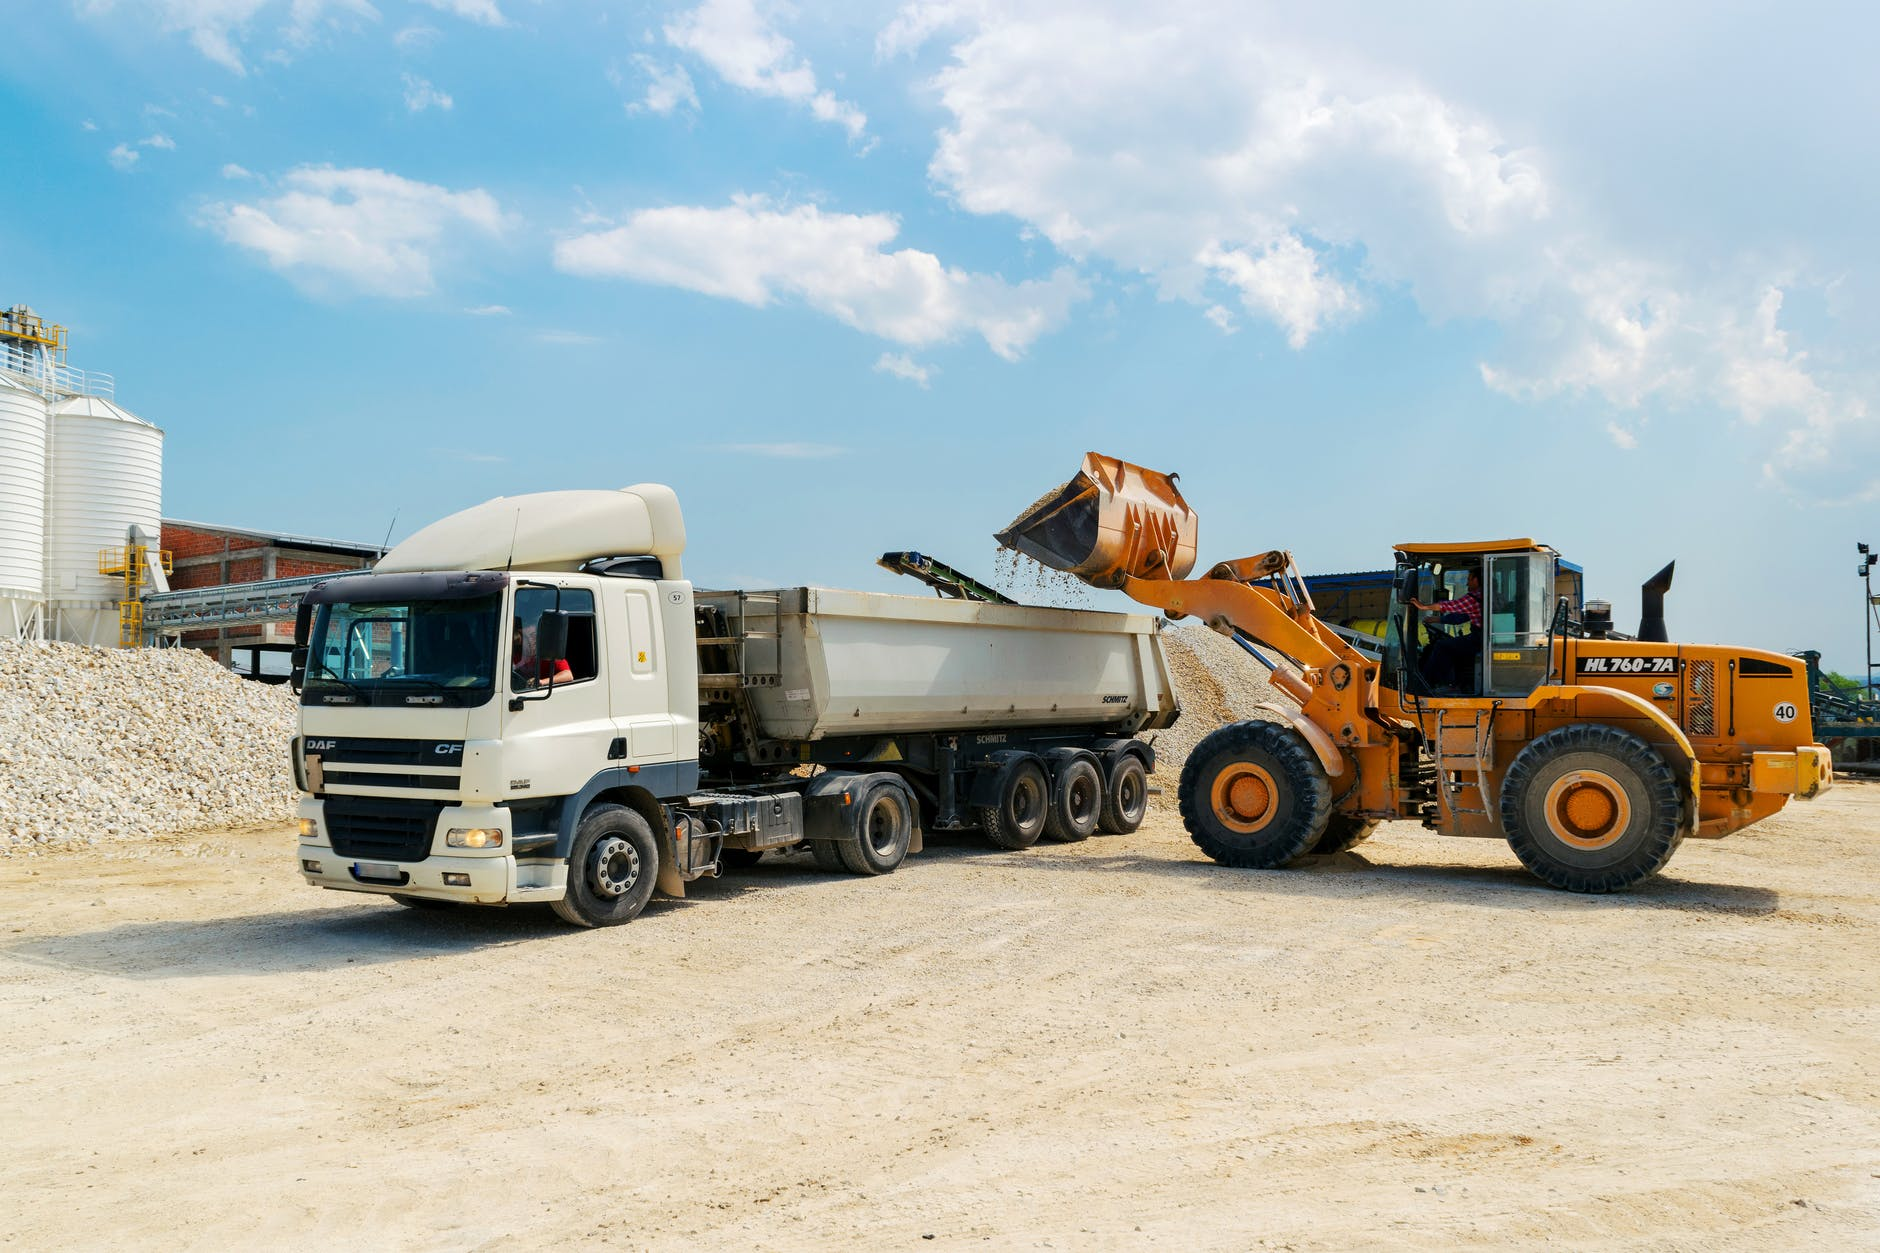 brown loader beside white cargo truck